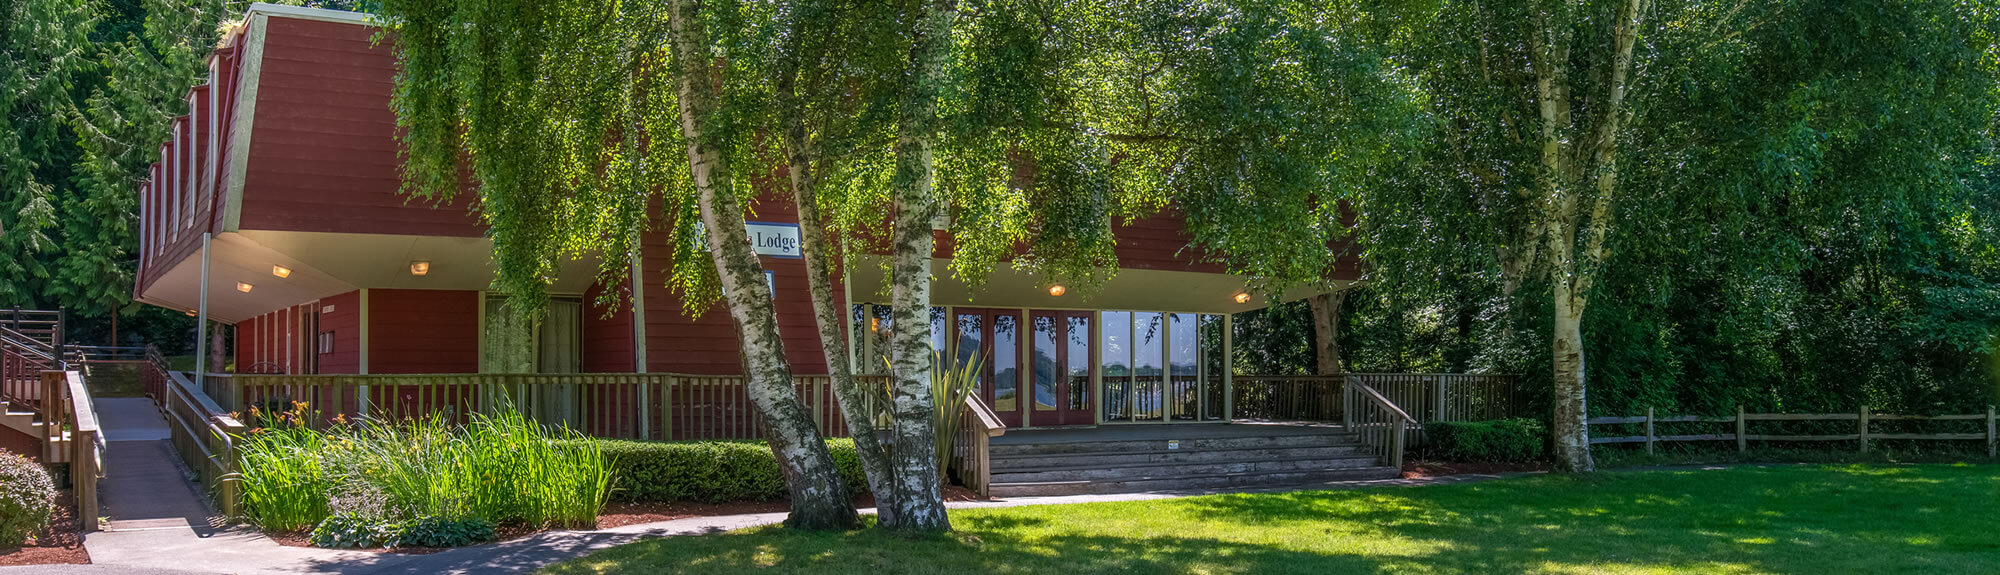 Founders Lodge - Event Rental - Front Entry